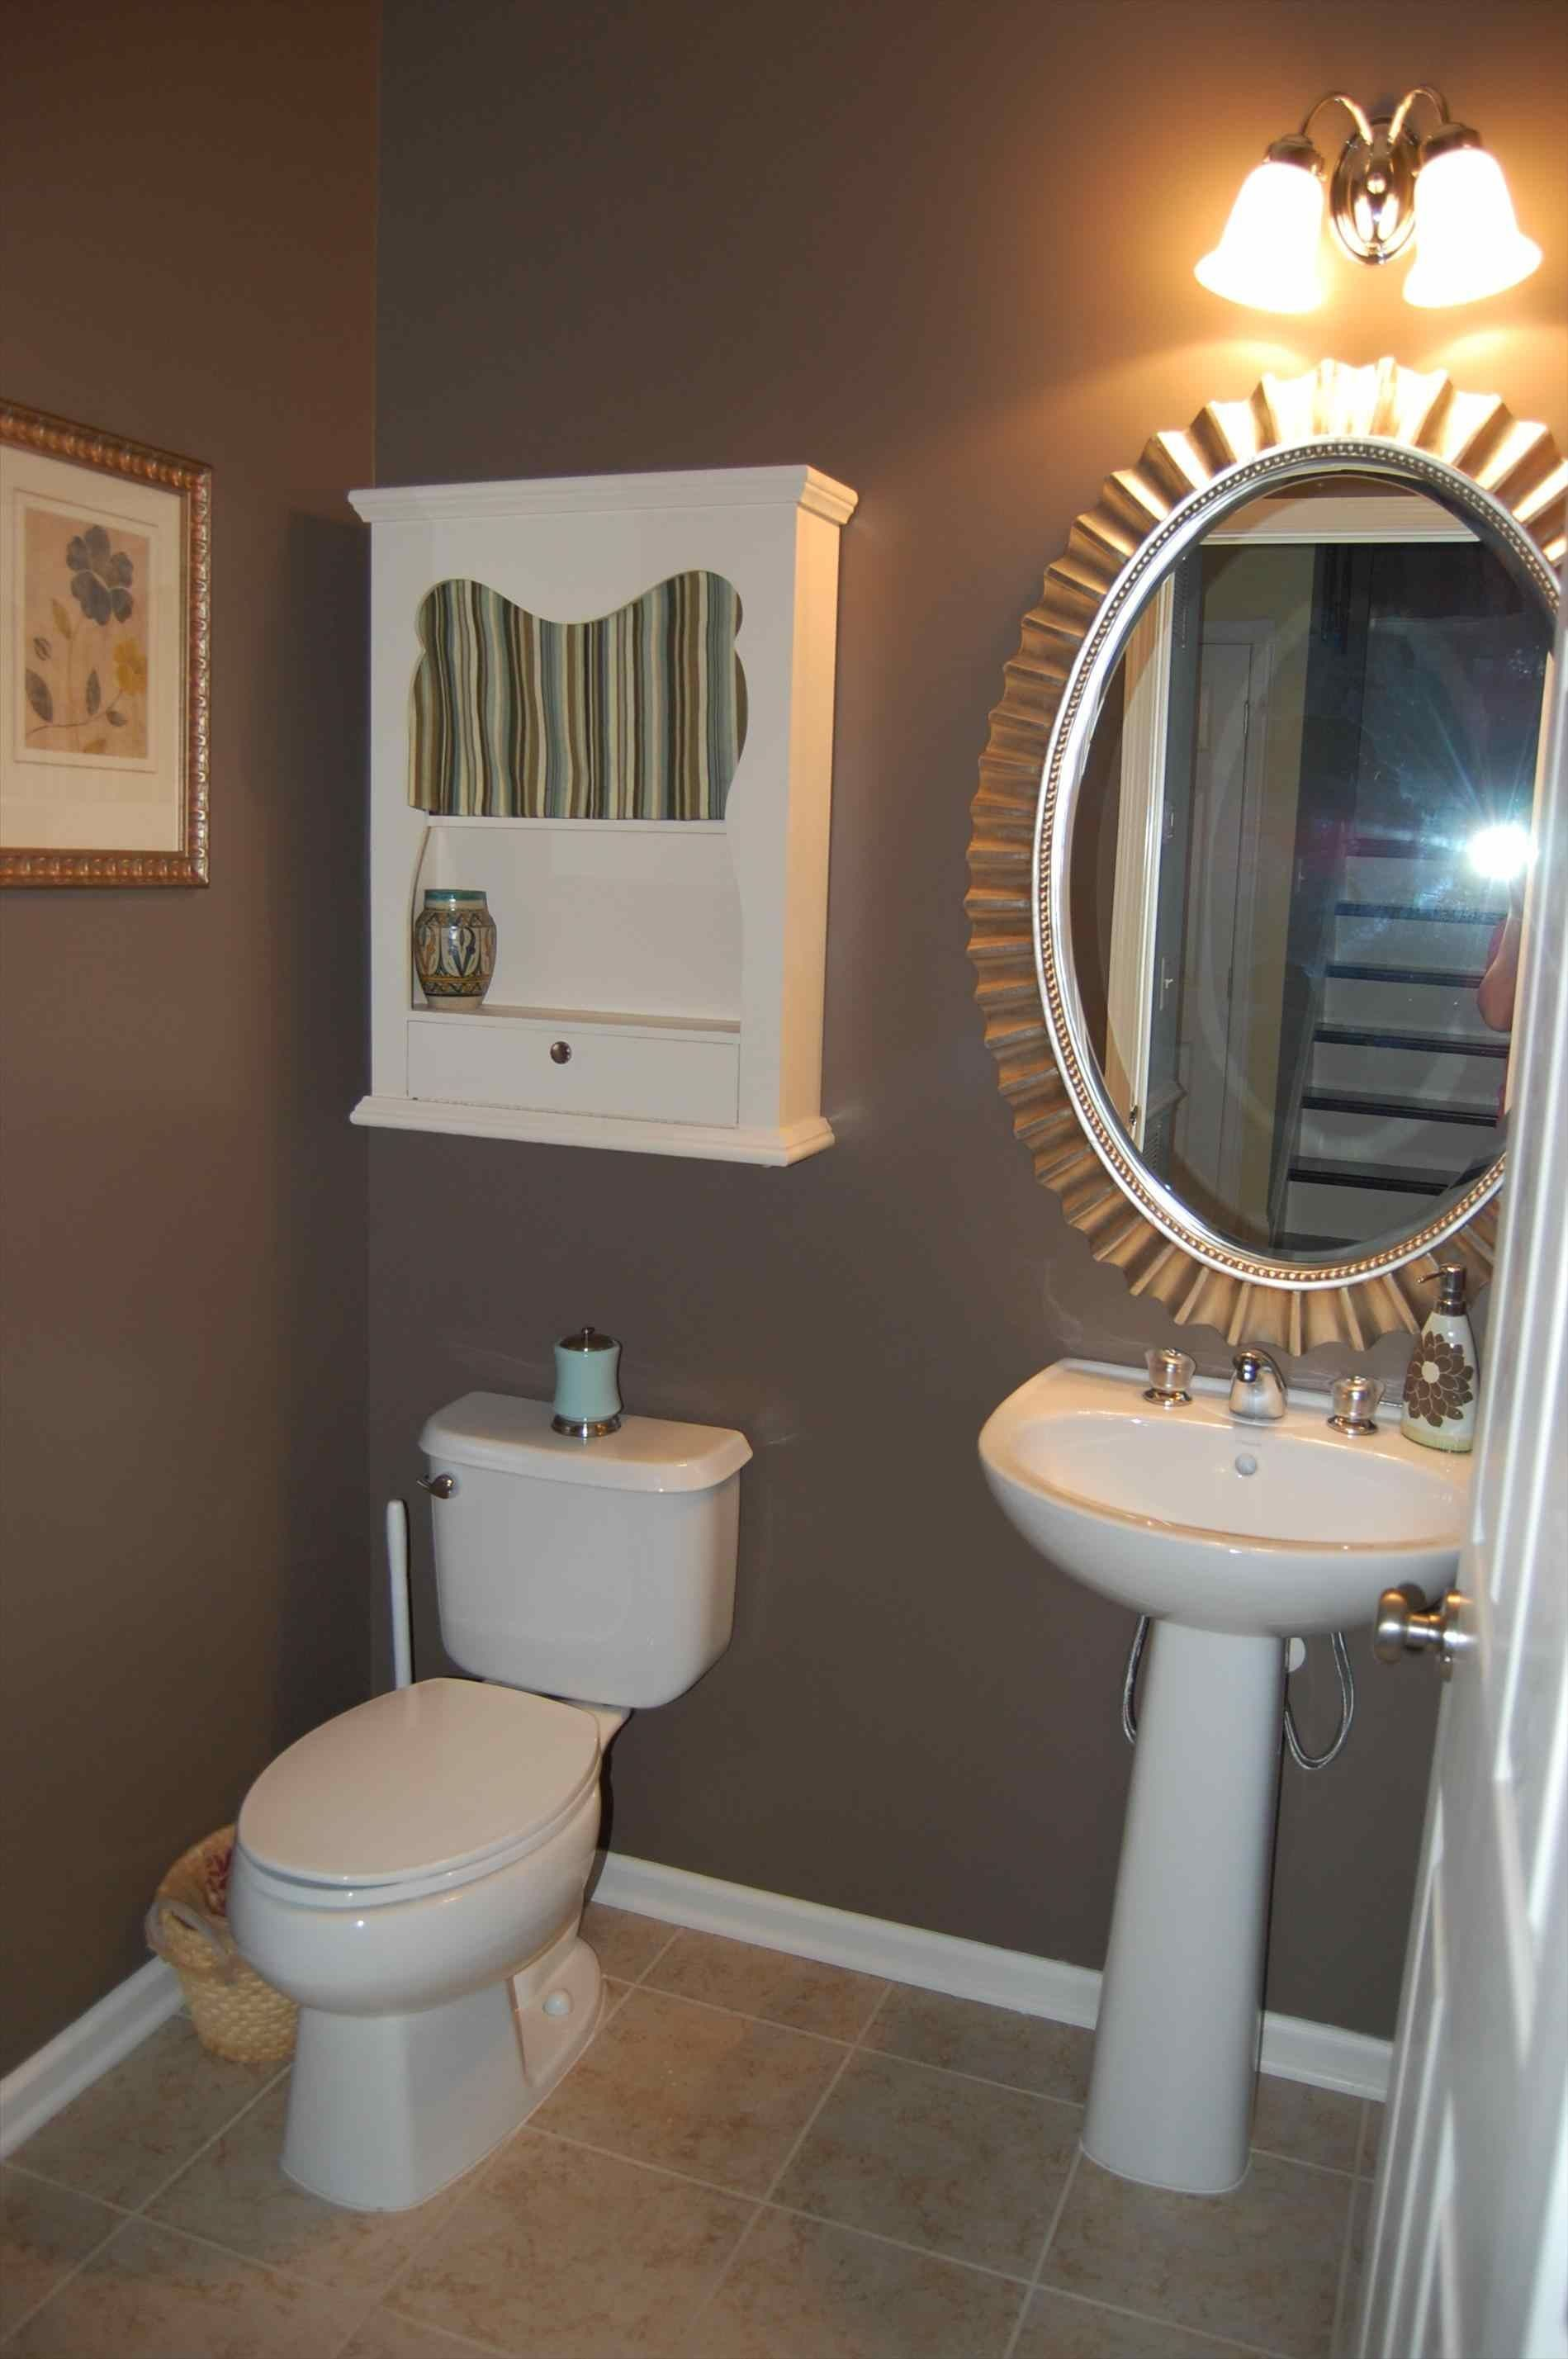 Paint Colors For A Small Bathroom With No Natural Light  Bathroom Inspiration Paint Small Bathroom Decorating Design